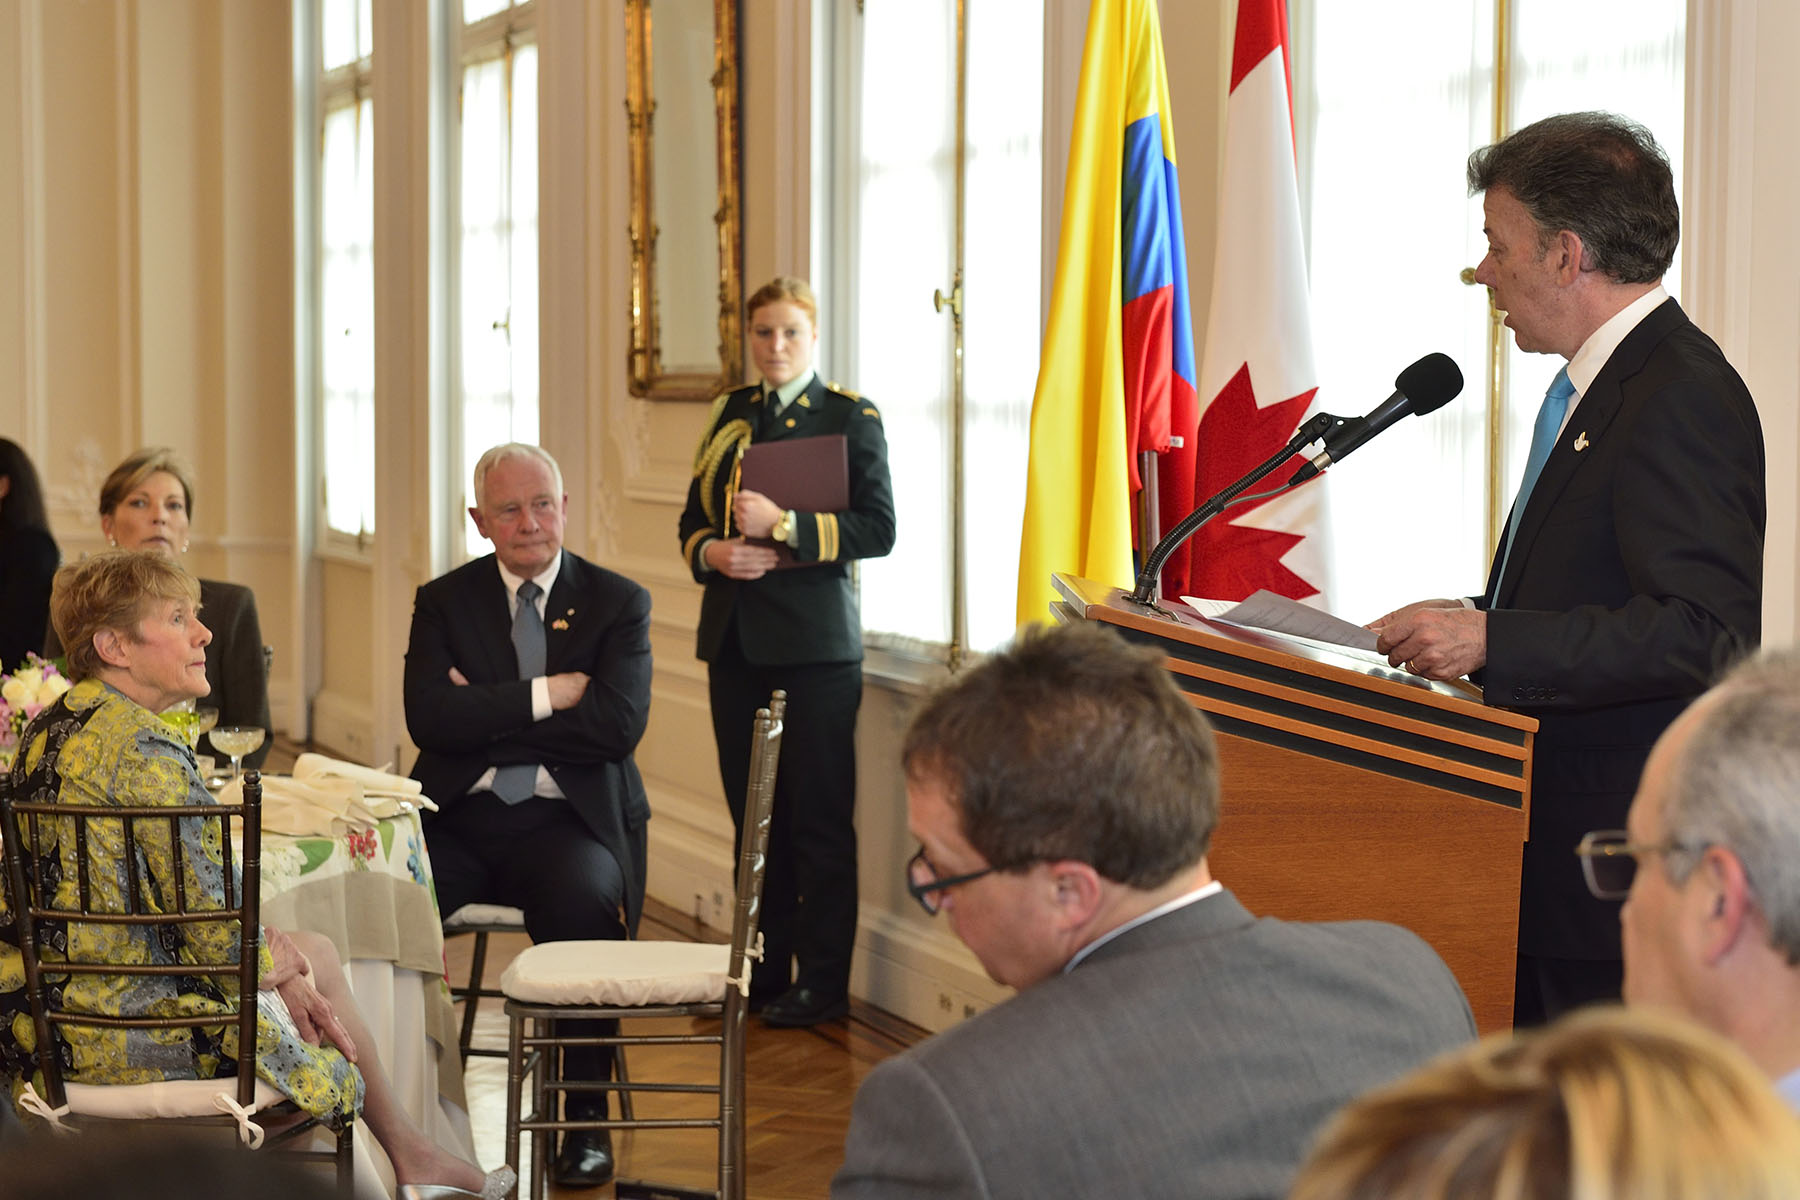 Their Excellencies then took part in a State luncheon hosted by President Santos Calderón, in honour of their visit to the country. The President first delivered remarks on this occasion.